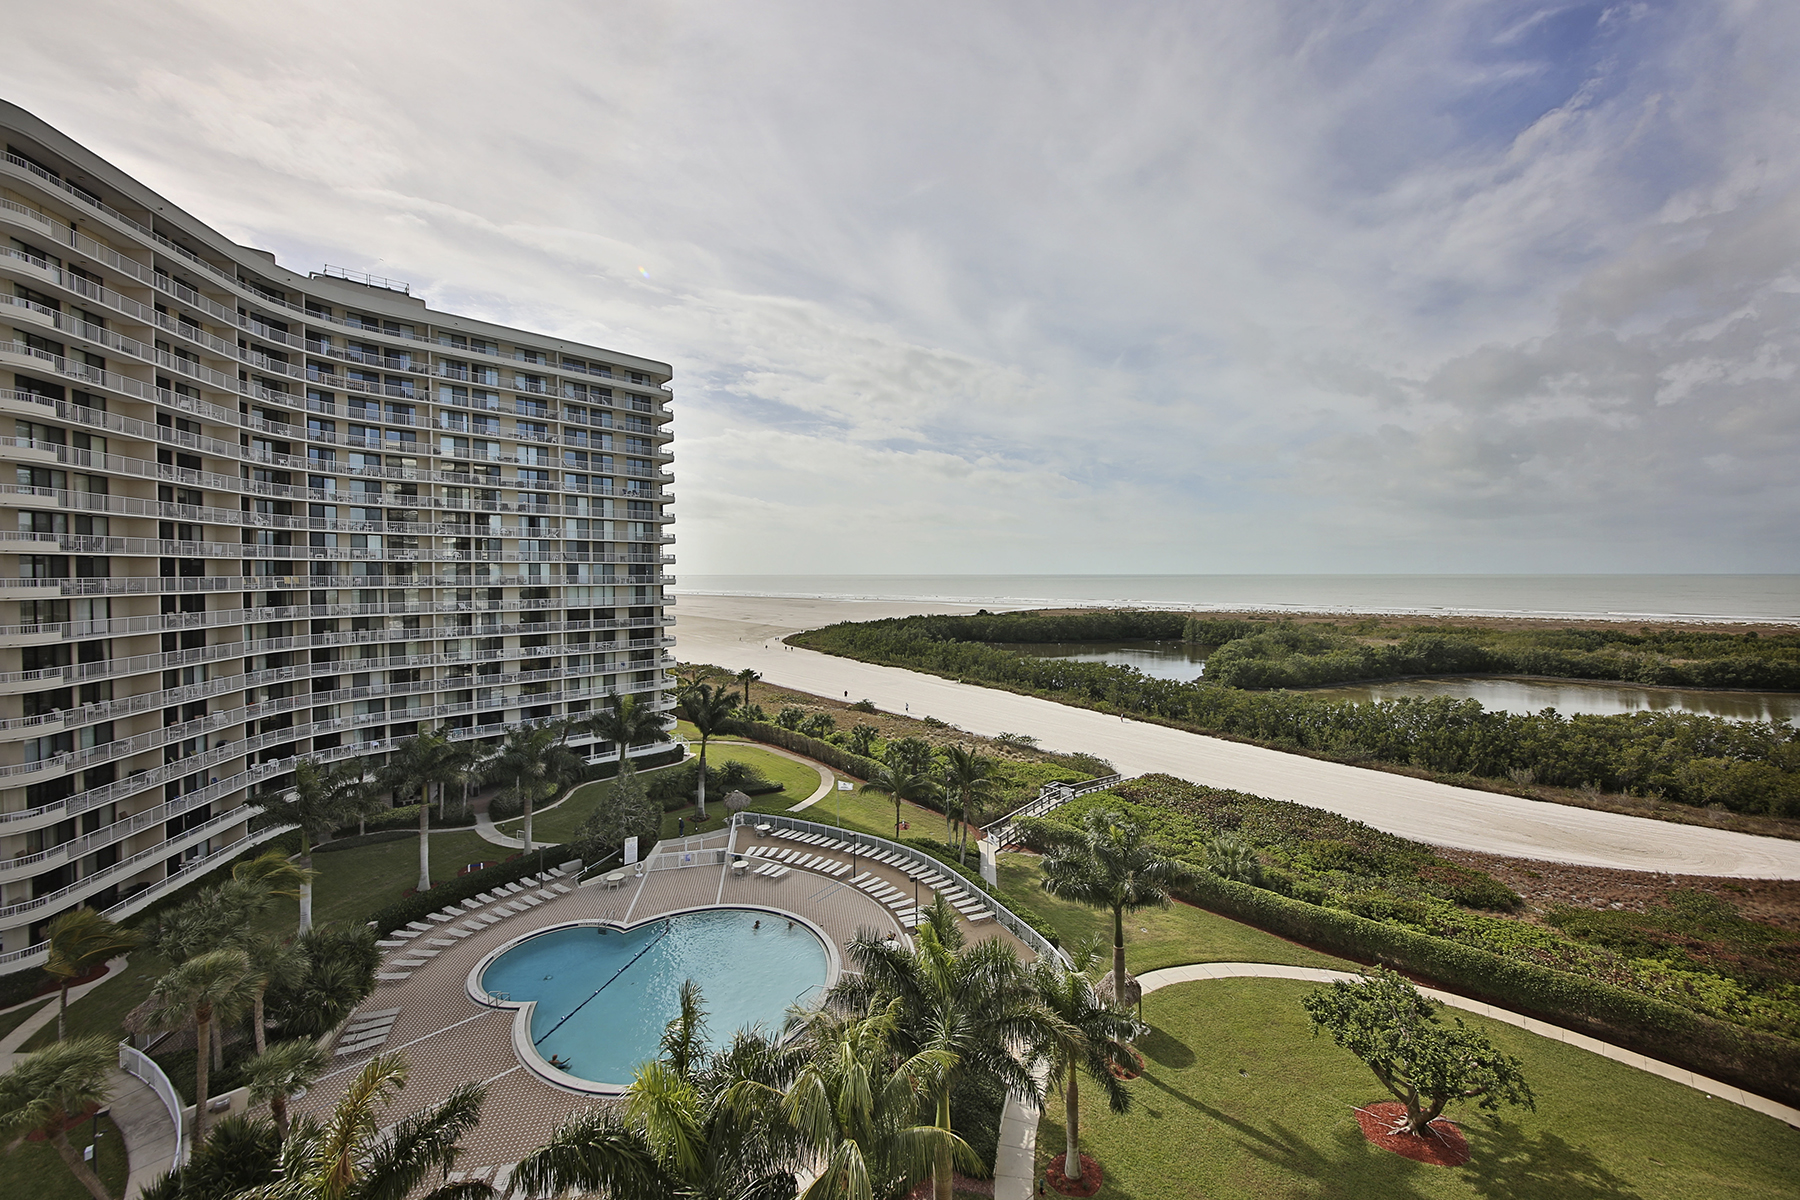 Condomínio para Venda às MARCO ISLAND - SOUTH SEAS 440 Seaview Ct 904 Marco Island, Florida, 34145 Estados Unidos